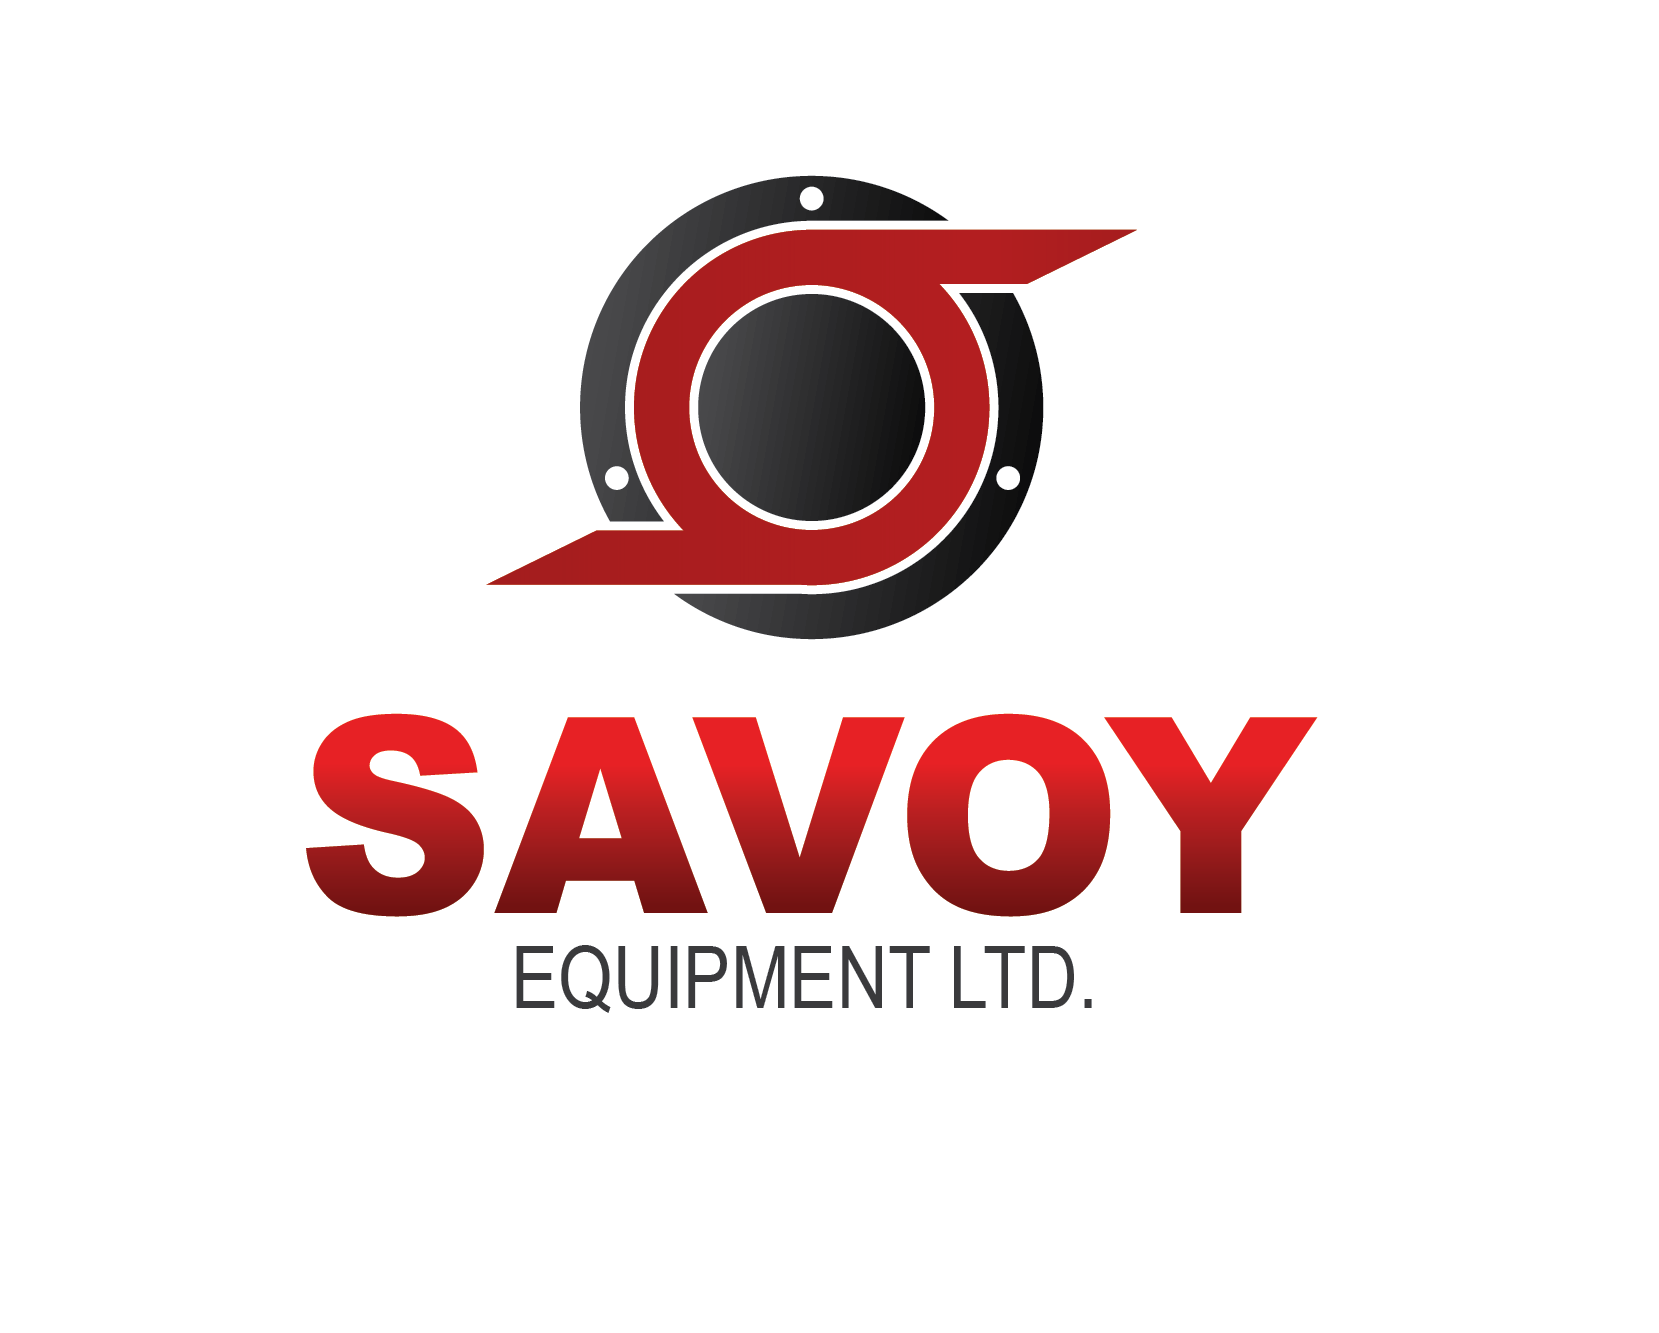 Logo Design by Jesus Emmanuel GAbriel - Entry No. 19 in the Logo Design Contest Inspiring Logo Design for Savoy Equipment Ltd..